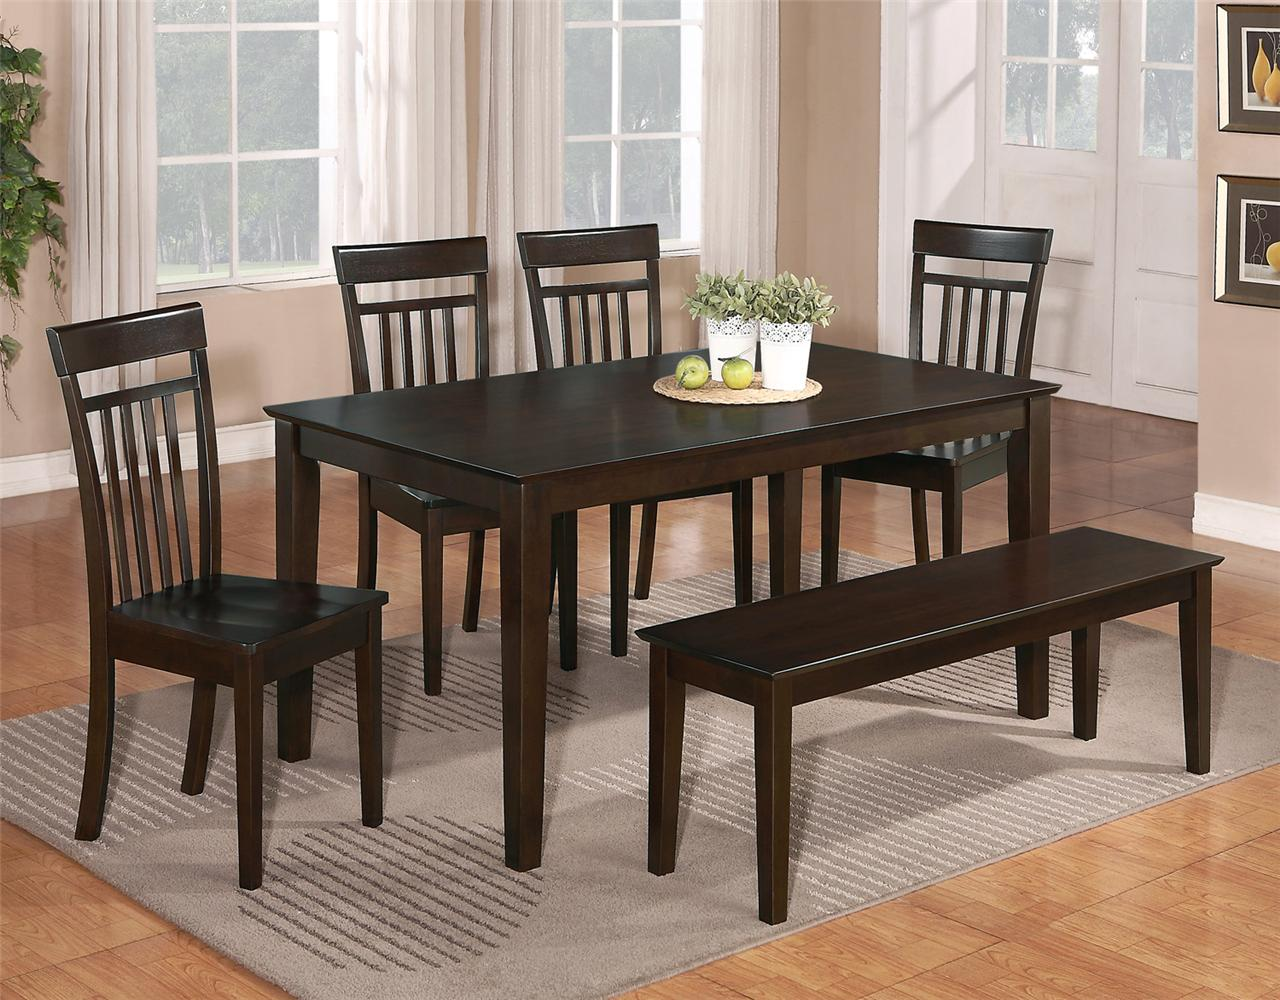 6 pc dinette kitchen dining room set table w 4 wood chair for 6 seater dining room table and chairs